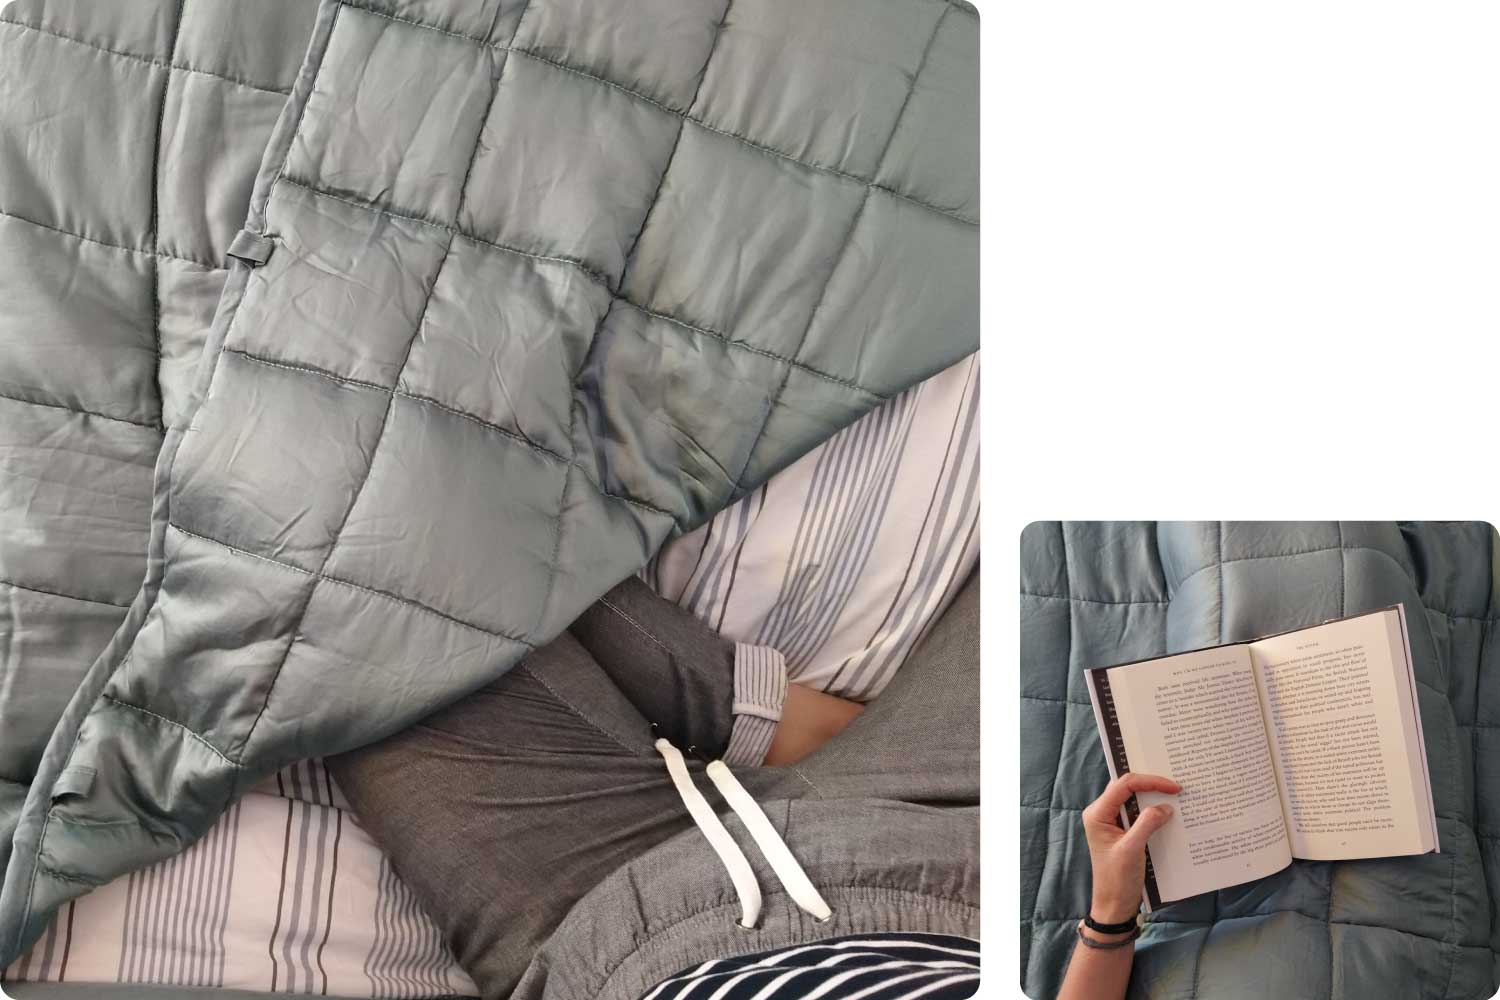 Calming blanket on bed while reading book